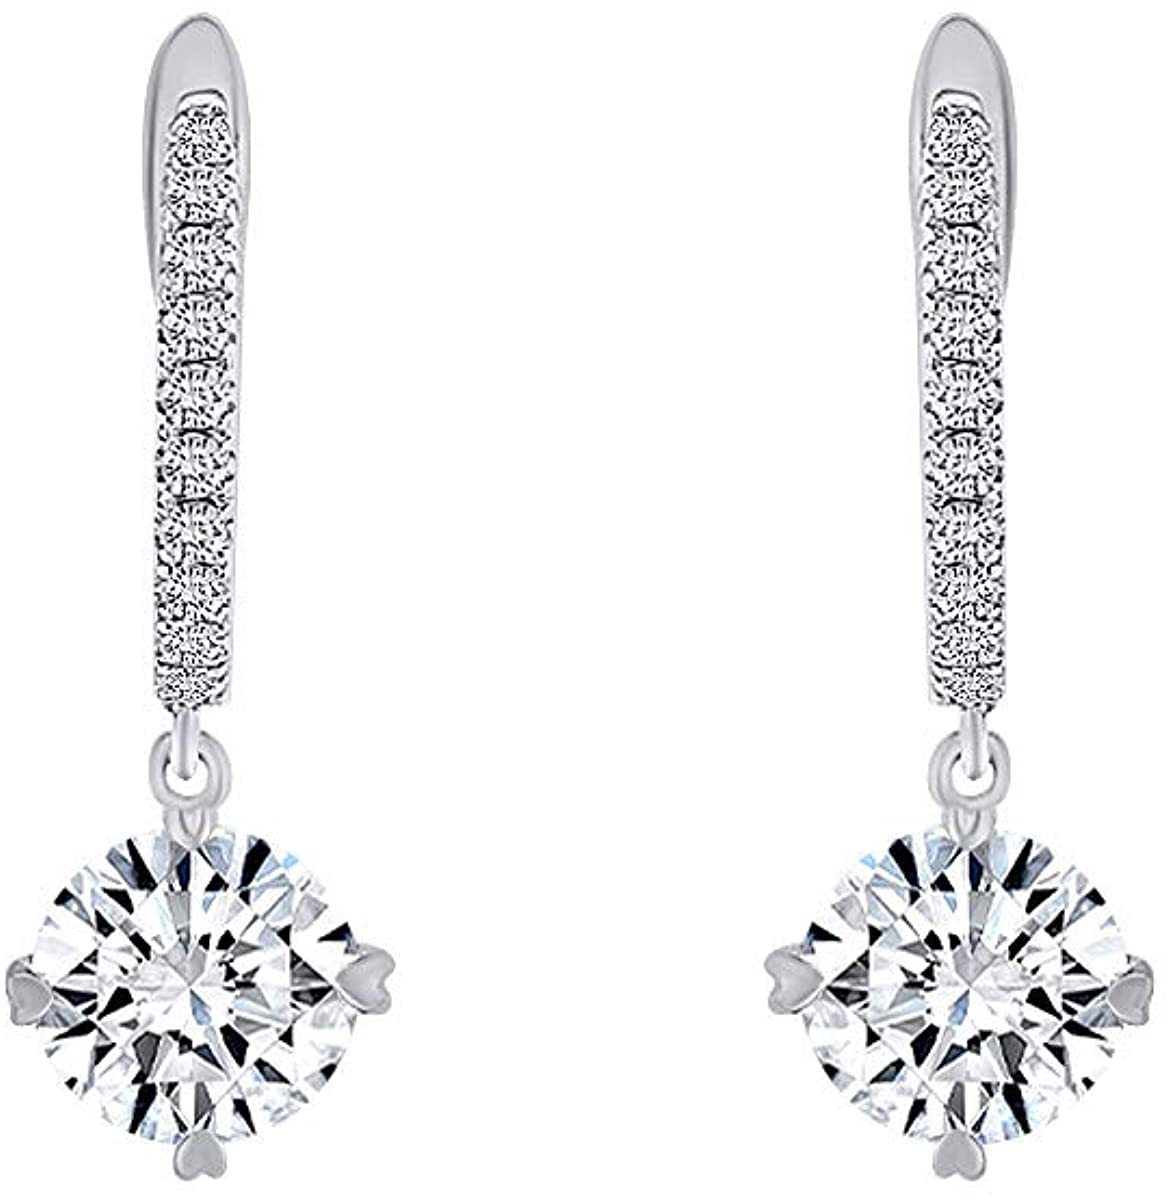 2 Cttw Womens Round White Moissanite Halo Hoop Earrings 14Kt Gold Over Sterling Silver